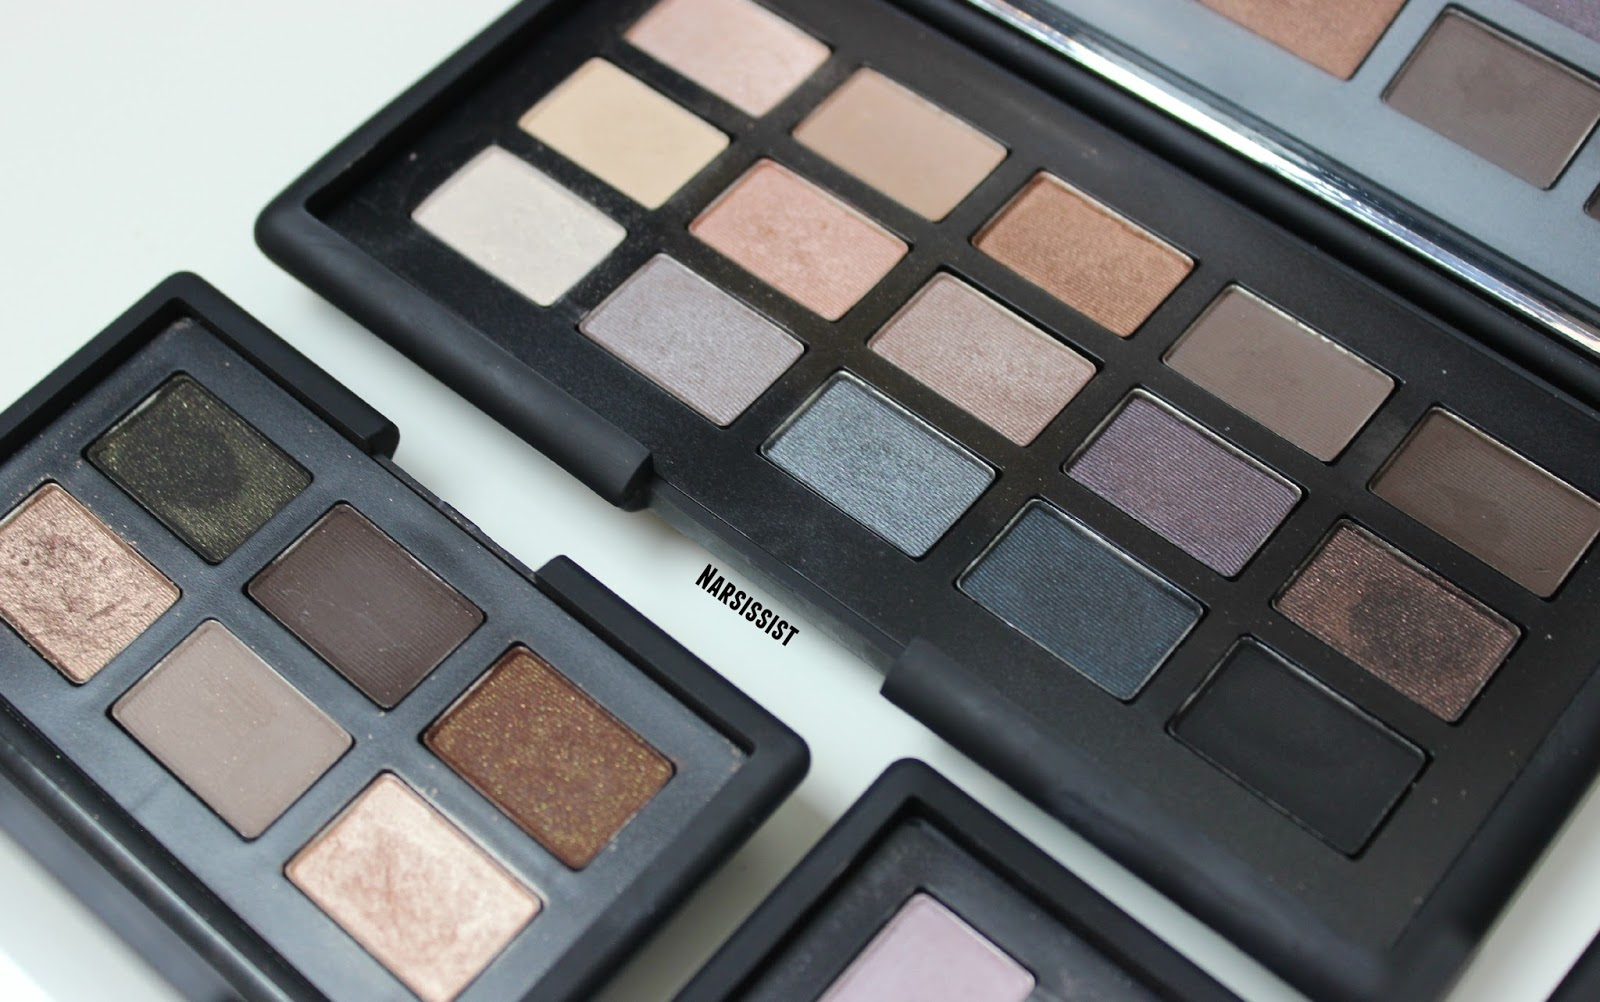 A picture of NARS Narsissist eyeshadow palette